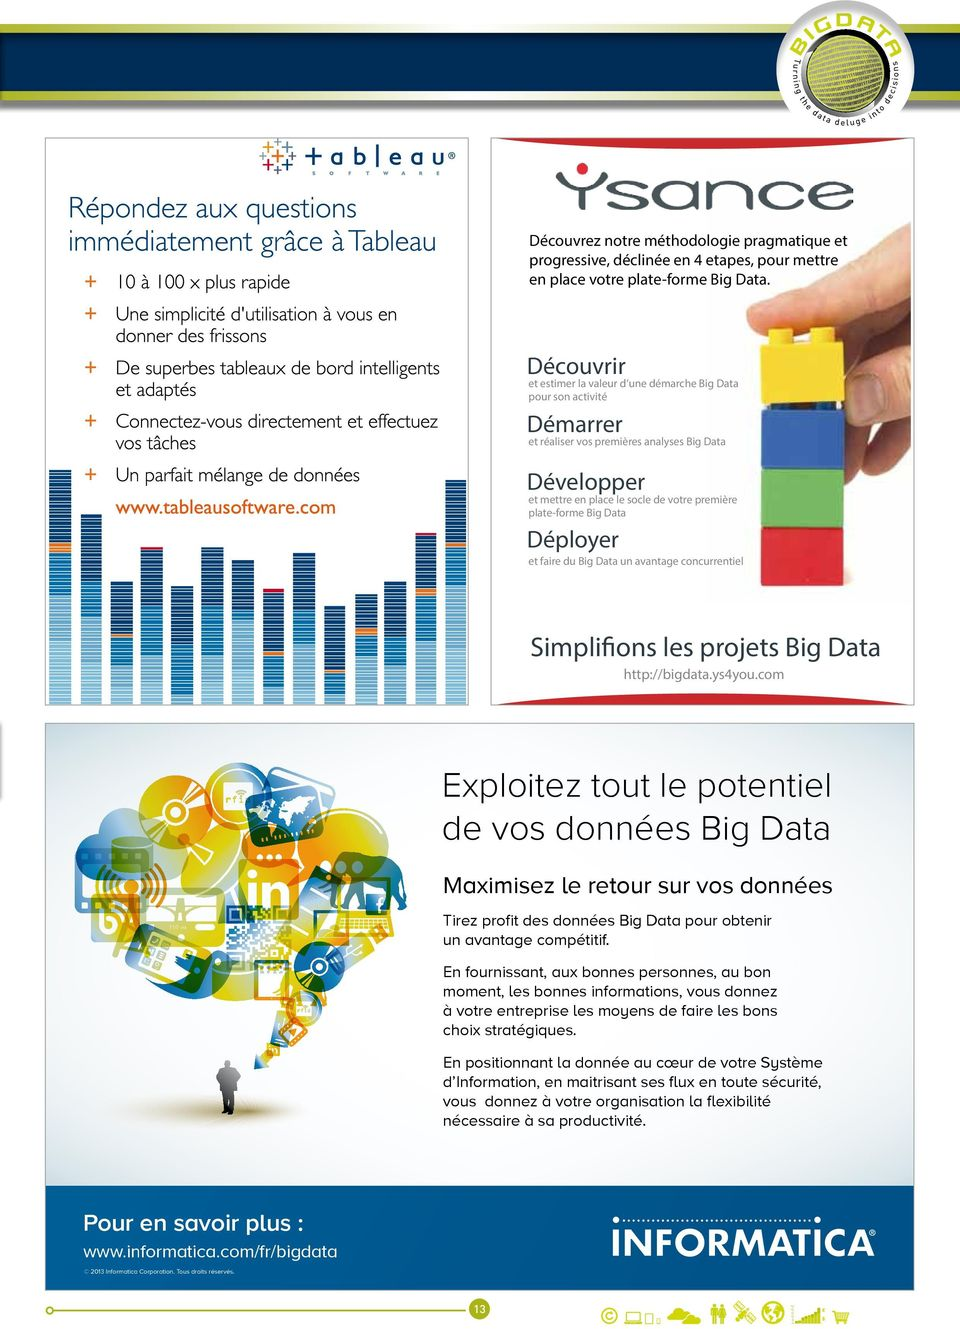 Data Déployer et faire du Big Data un avantage concurrentiel Simplifions les projets Big Data http://bigdata.ys4you.